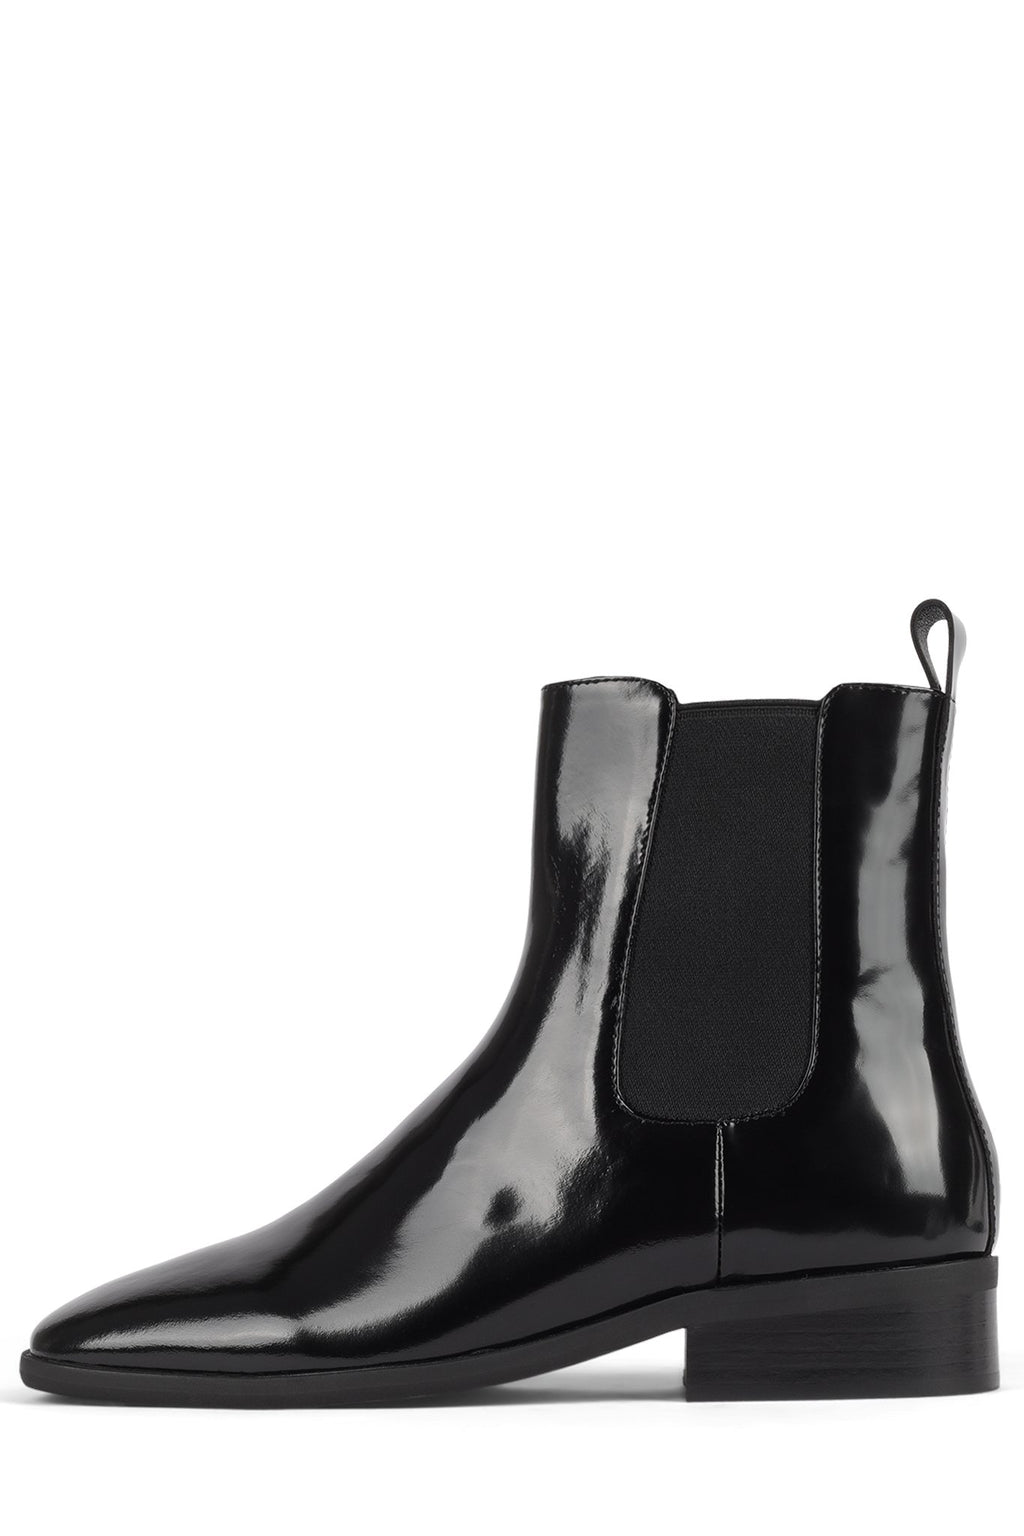 EMRYS Bootie Jeffrey Campbell Black Box 6